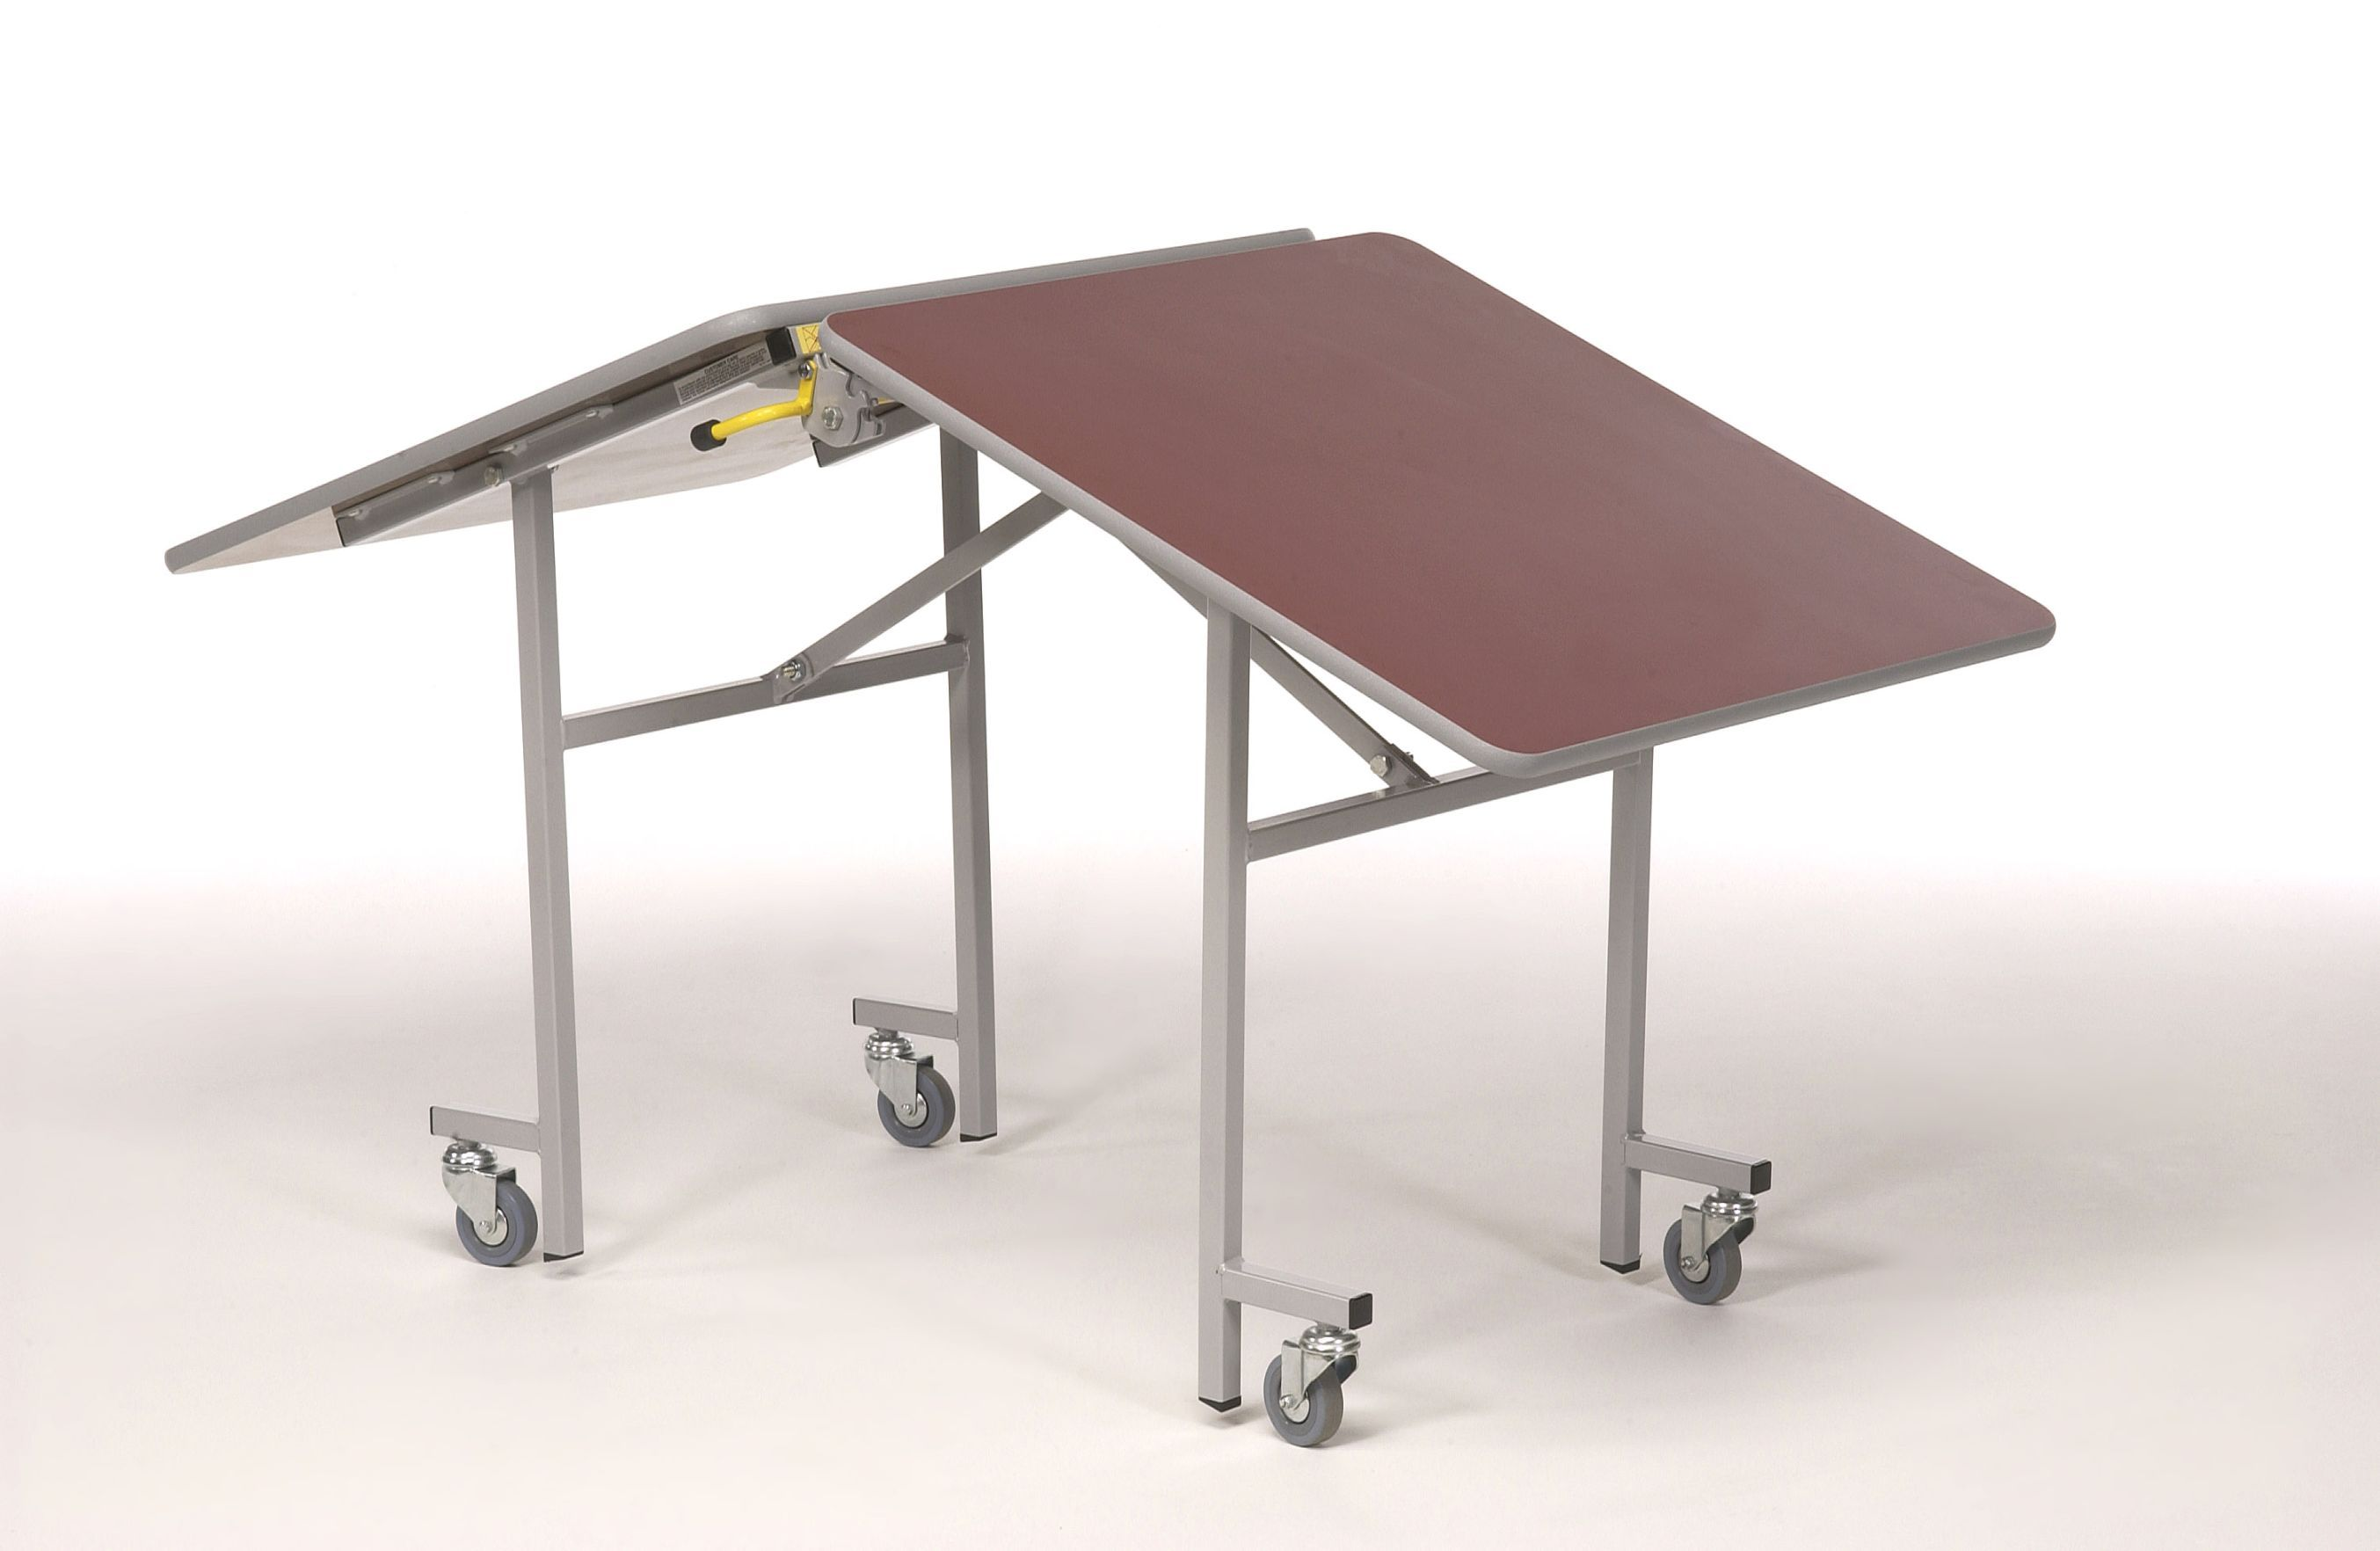 Small Folding Table With Wheels 3 Folding Table Small Space